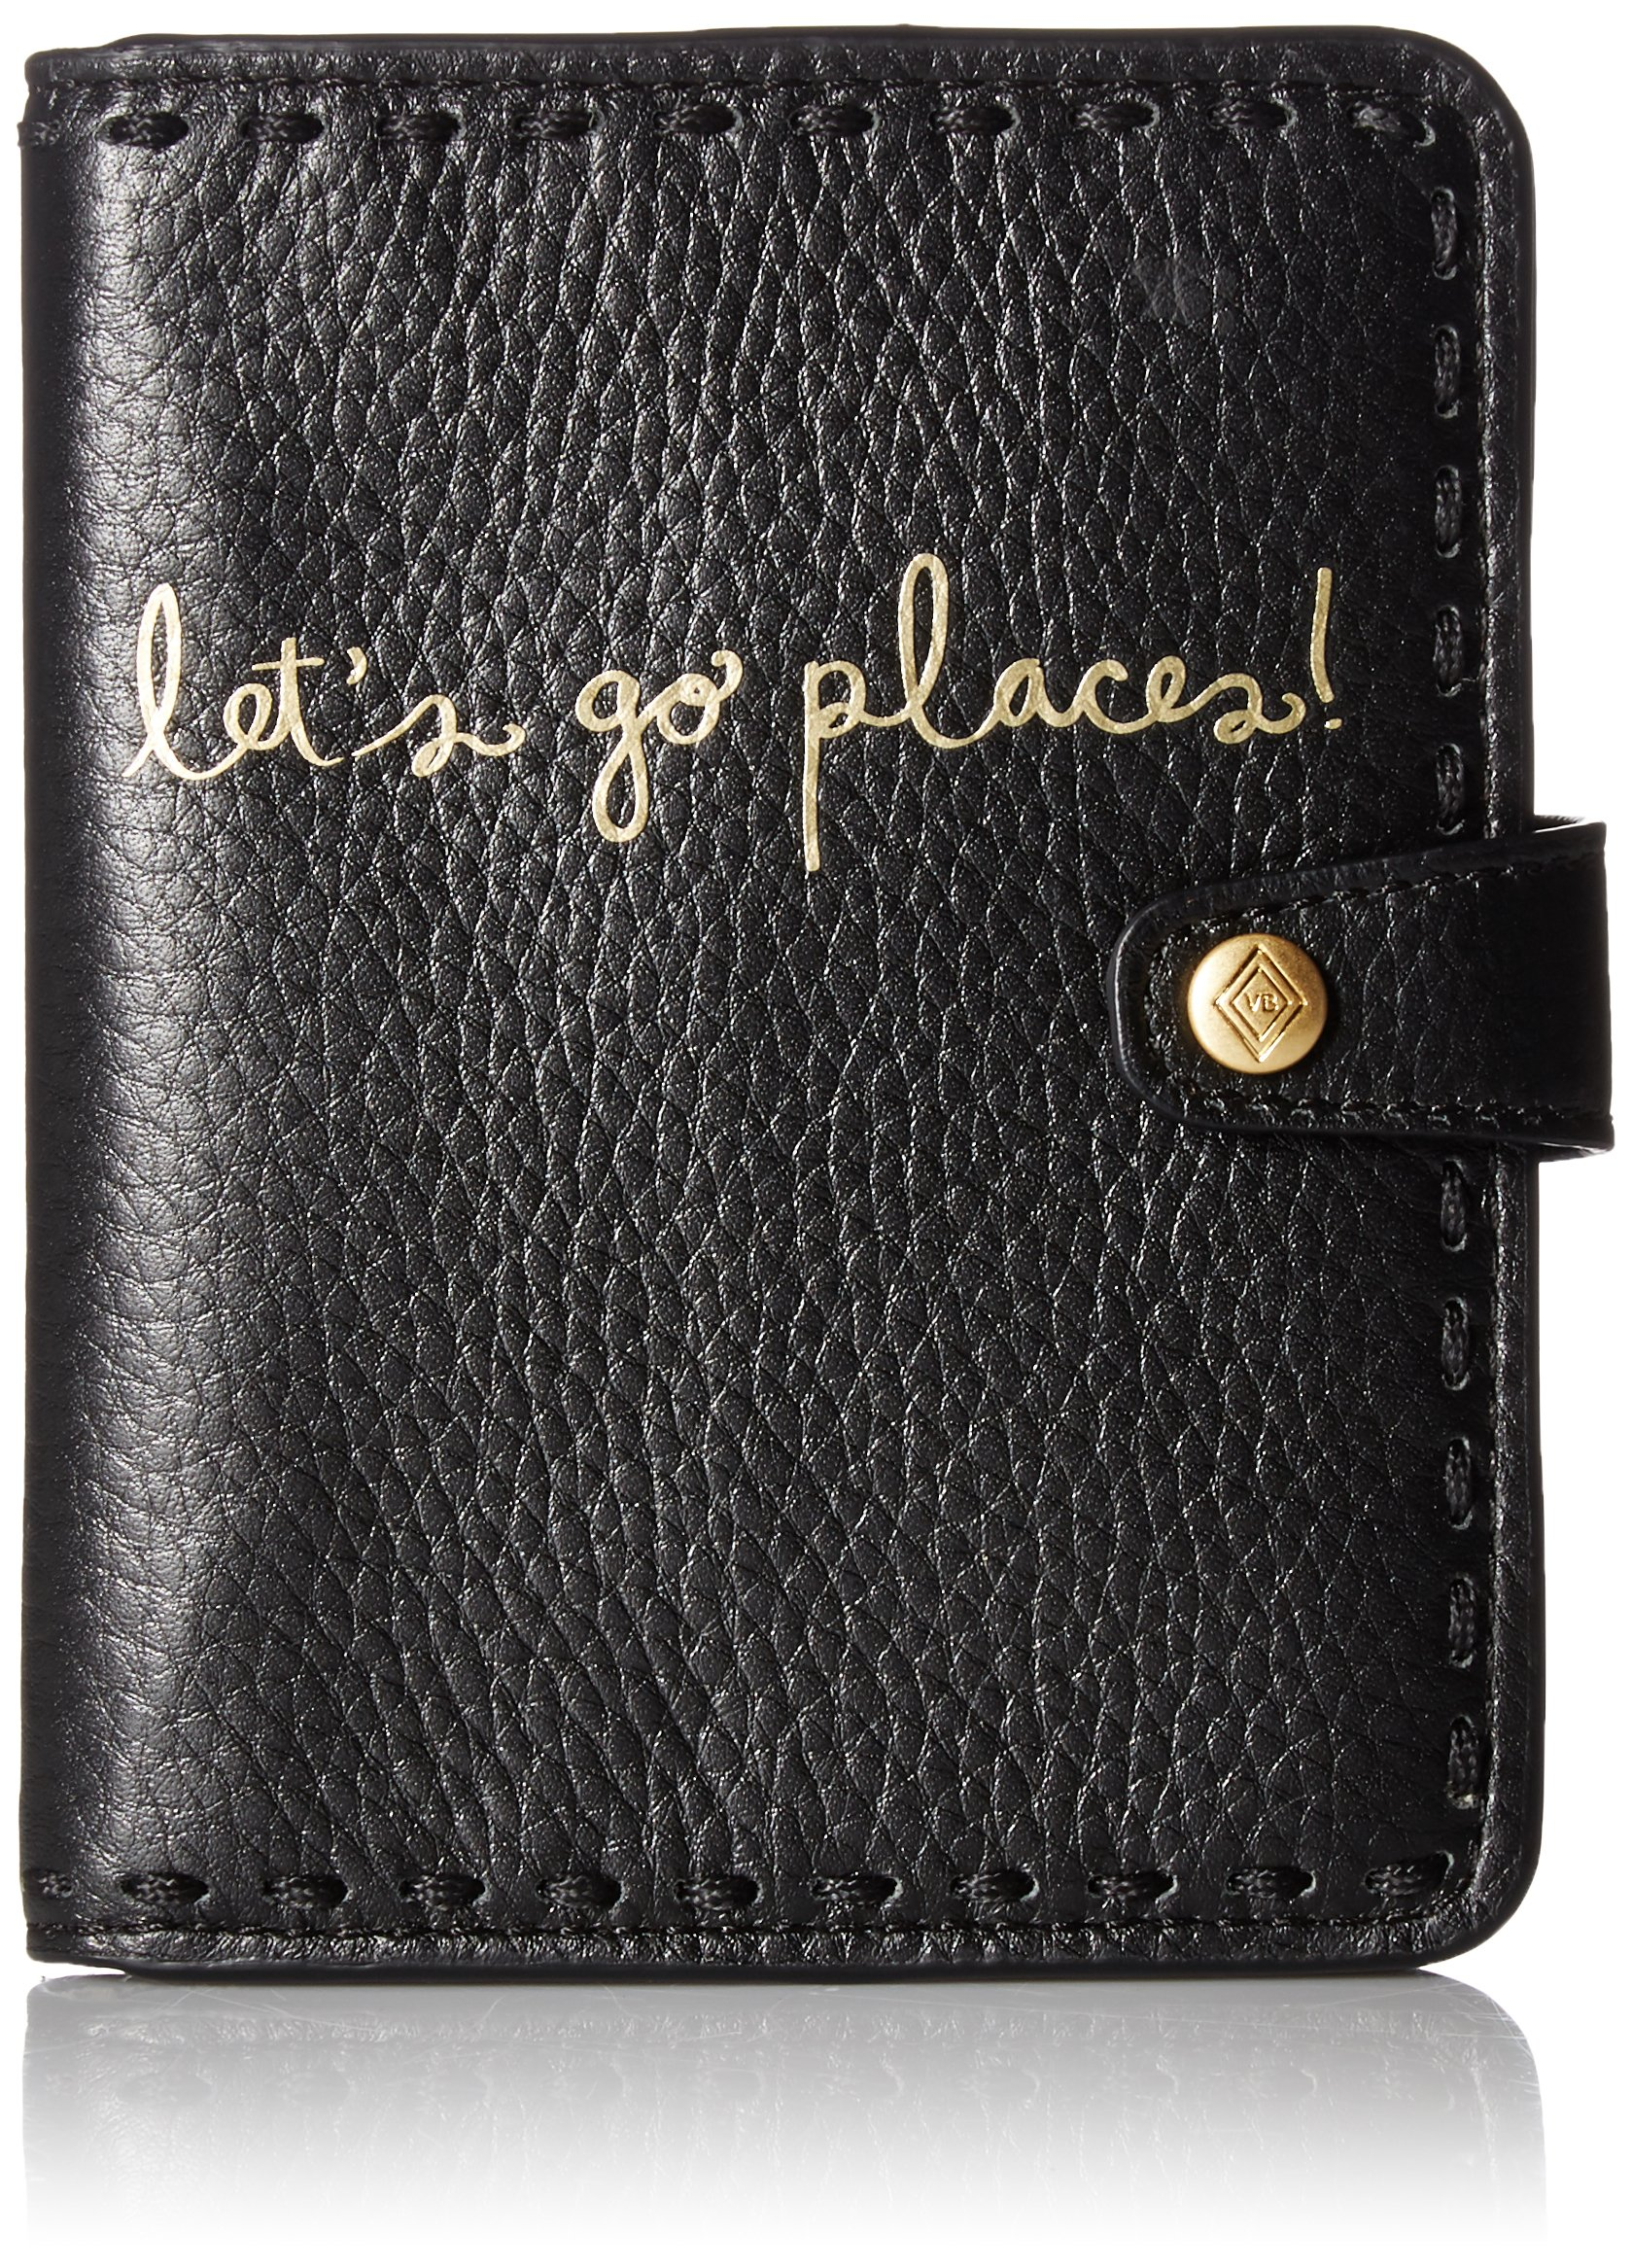 Mallory RFID Passport Wallet Pass Case, Black, One Size